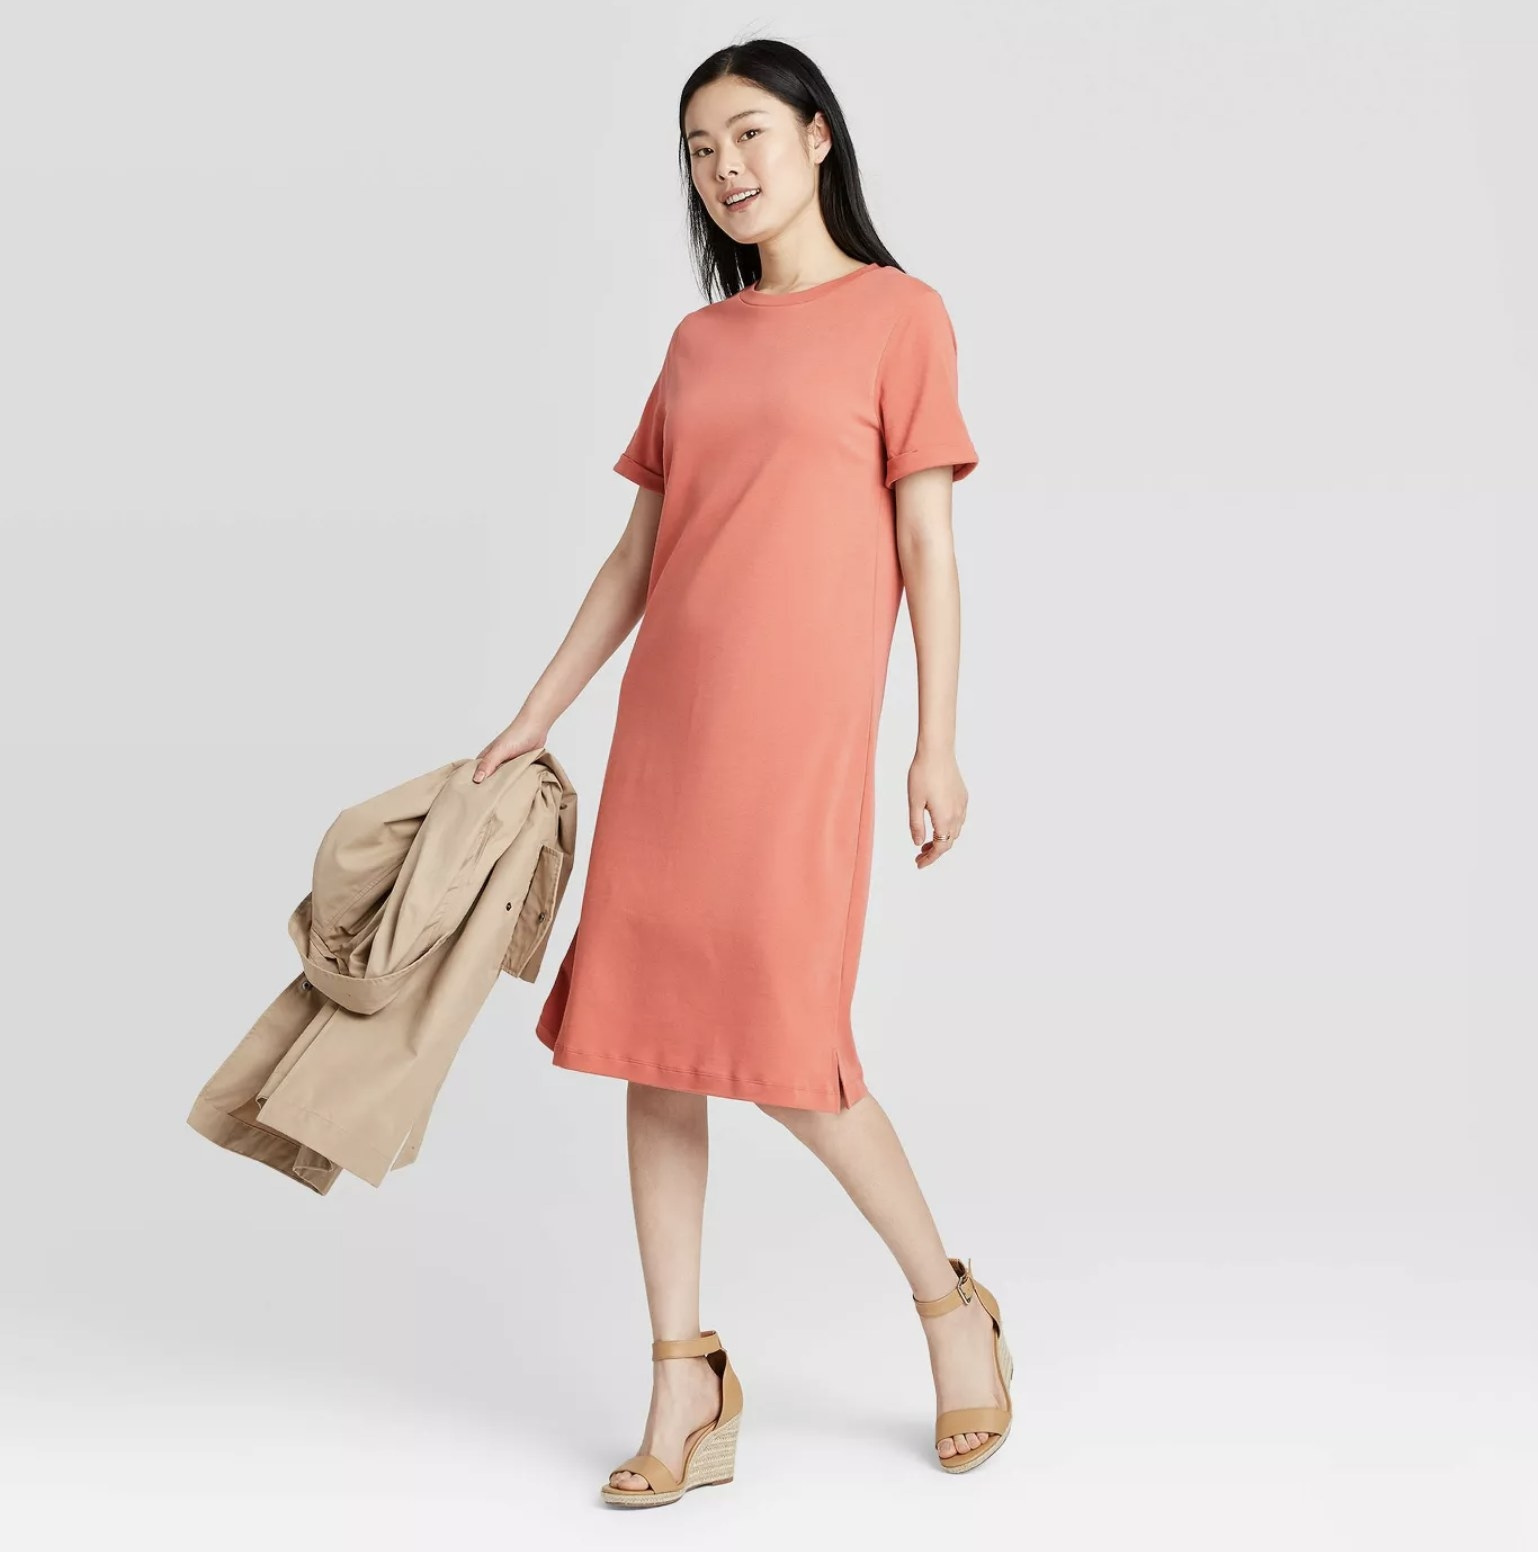 Model wearing the knee-length T-shirt dress in pink